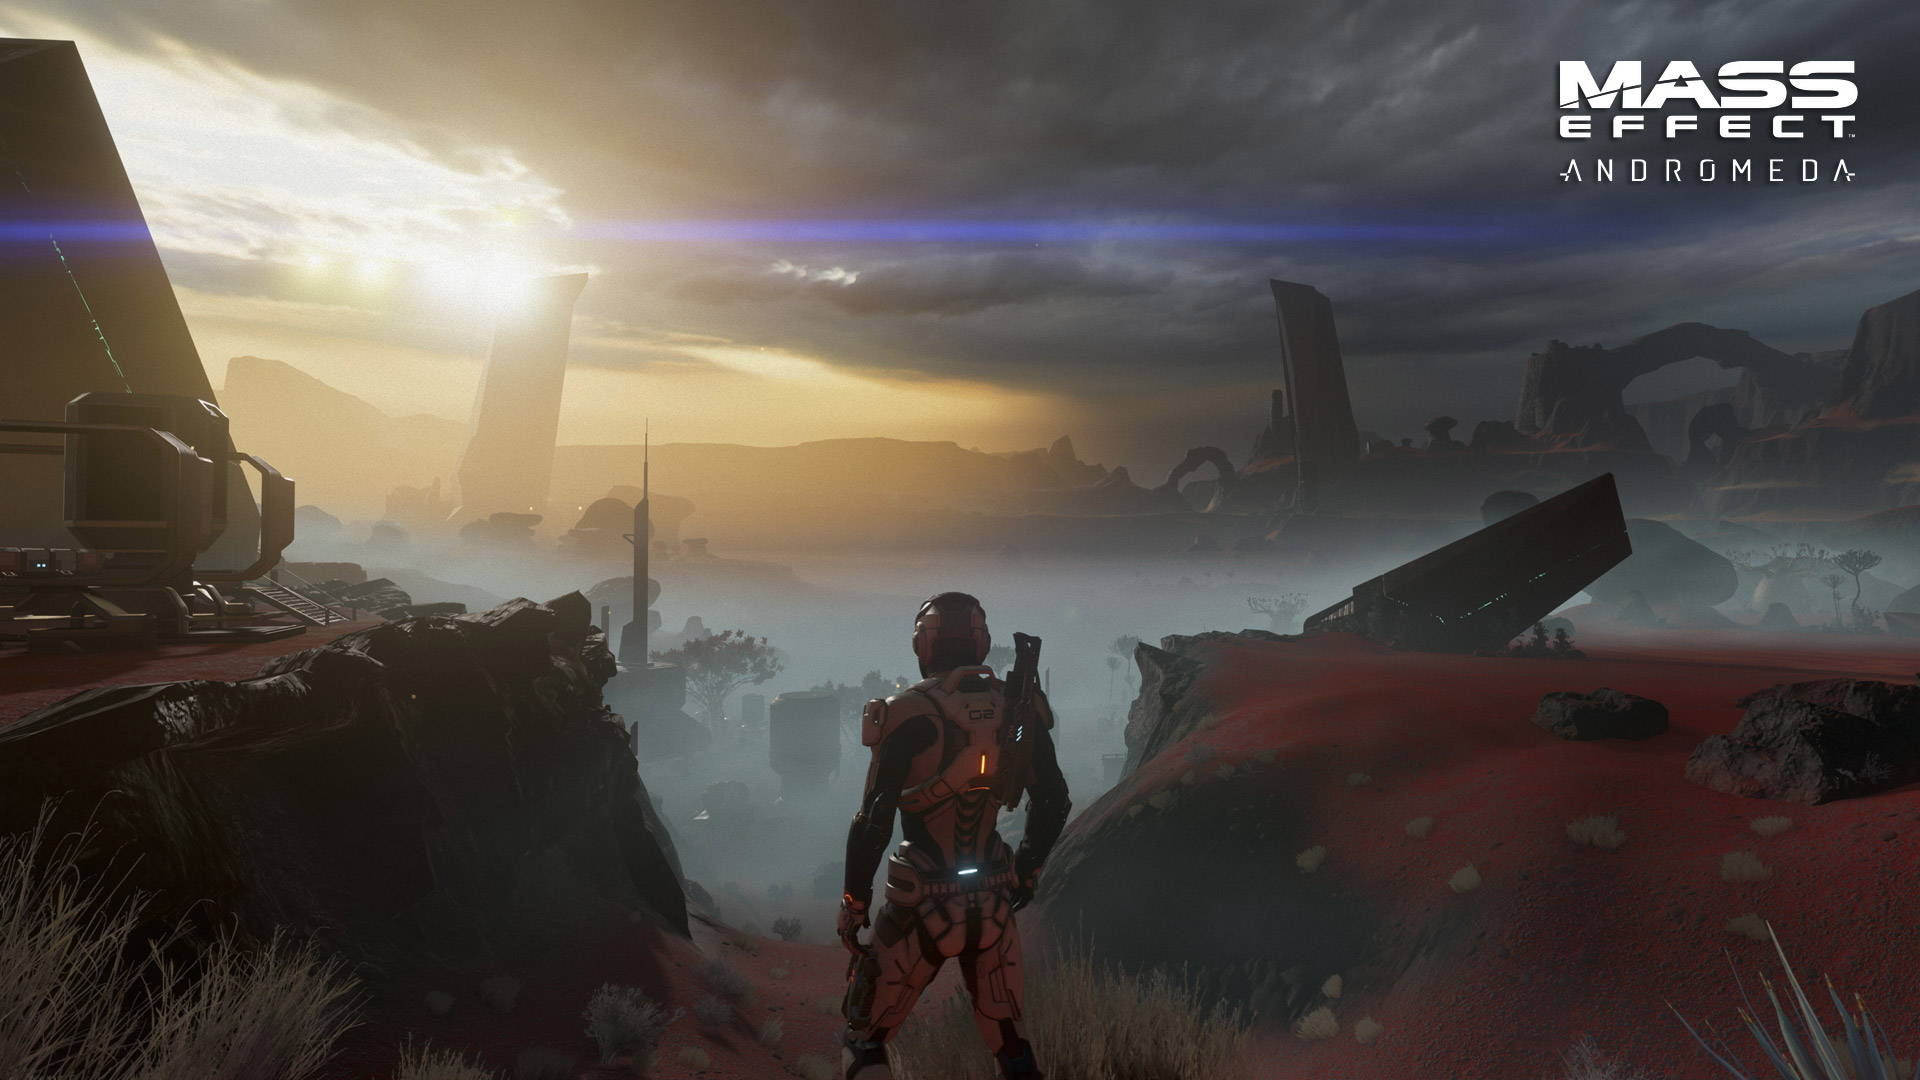 Mass Effect: Andromeda Wallpaper in 1920x1080